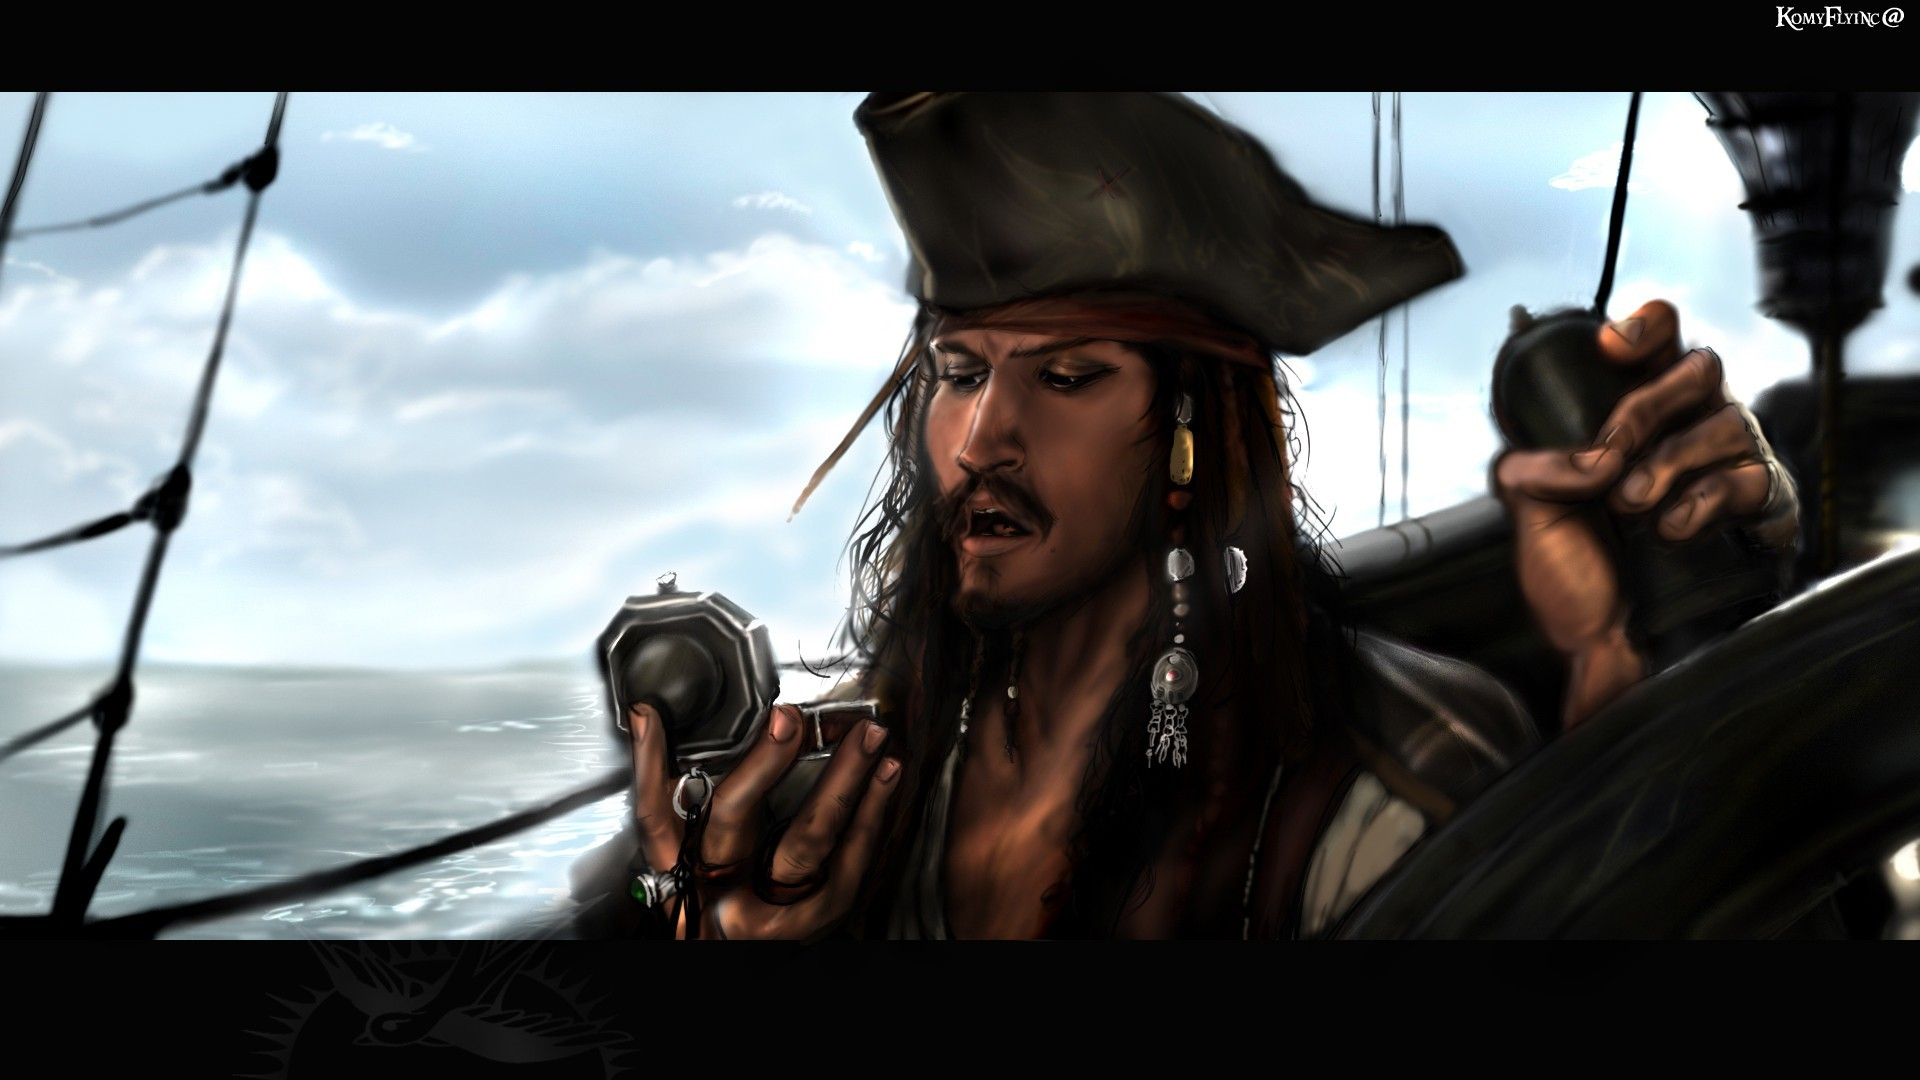 Captain jack sparrow wallpaper wallpapertag - Fan wallpaper download ...